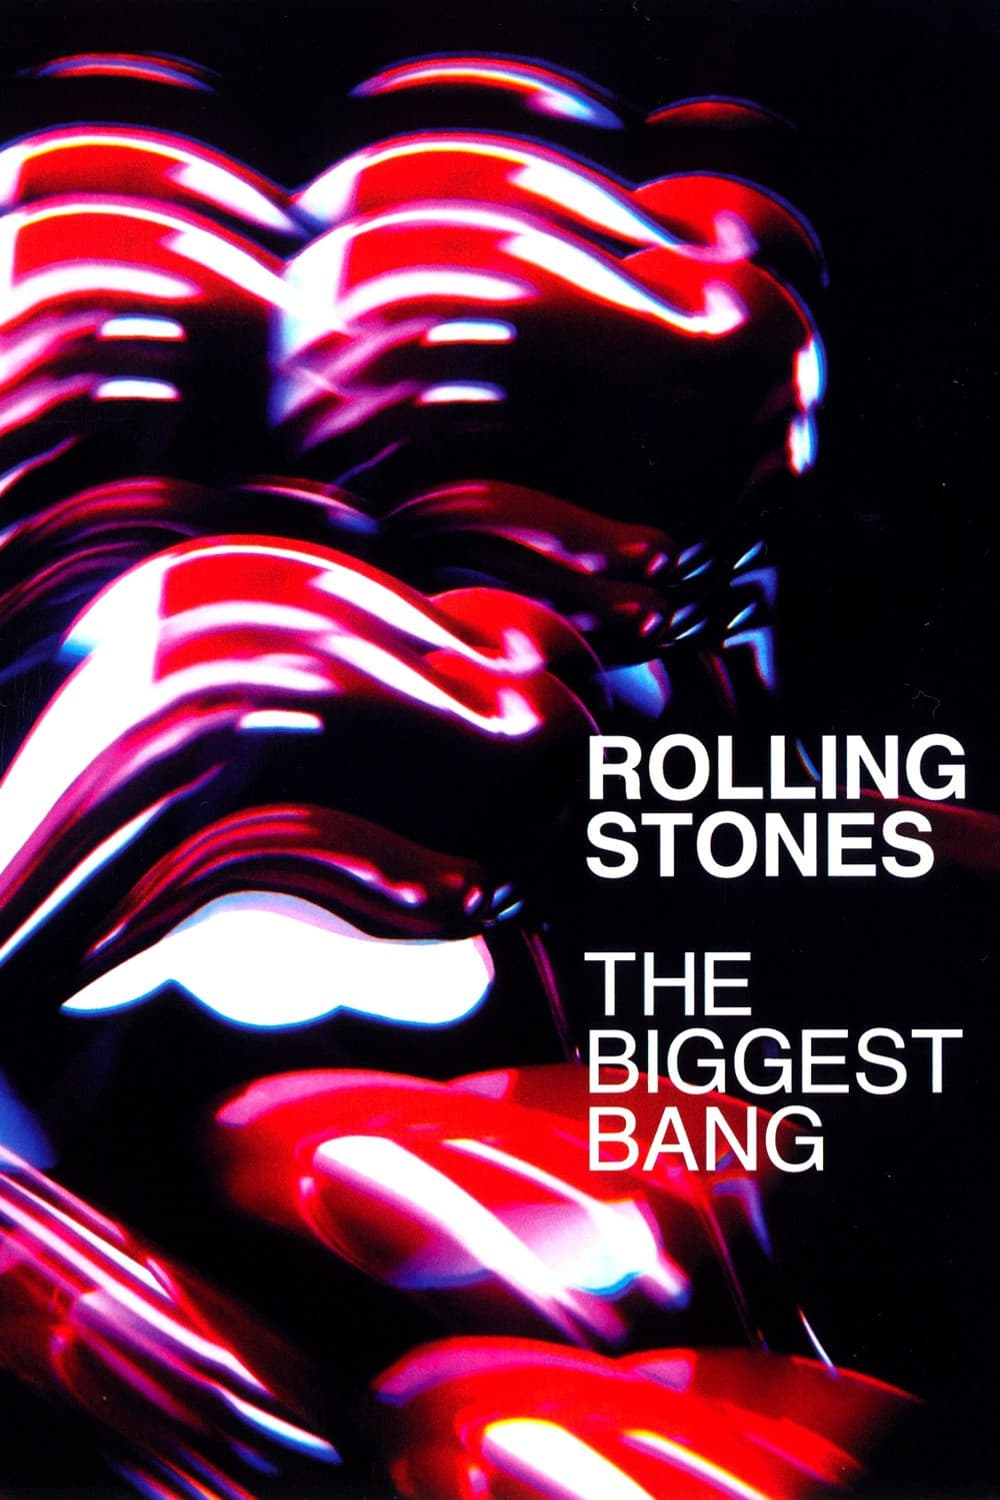 The Rolling Stones - The Biggest Bang (2009)